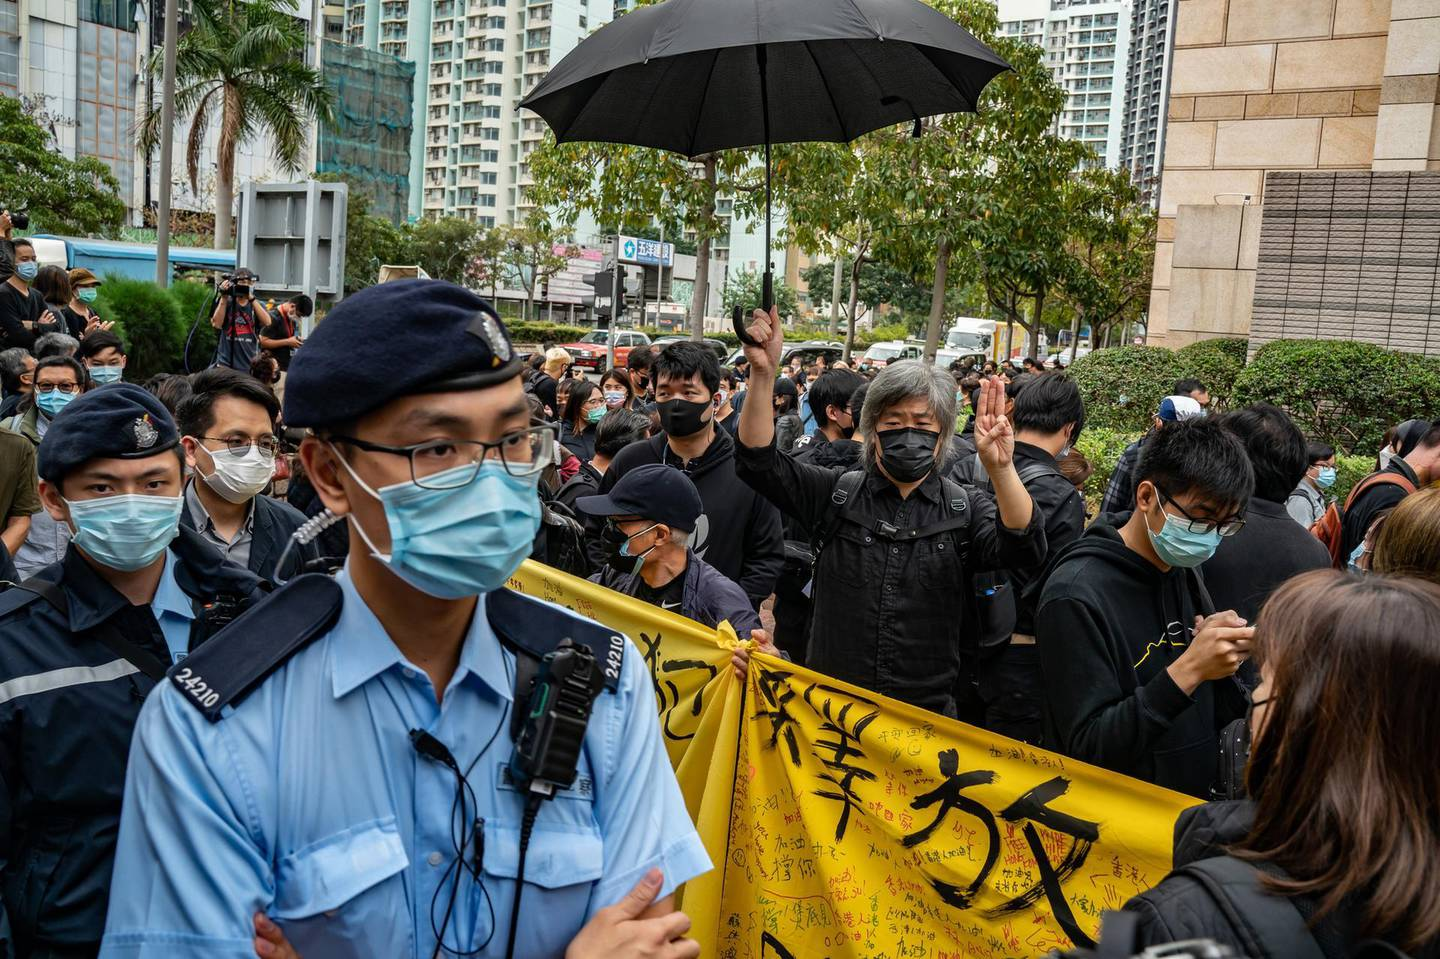 HONG KONG, HONG KONG - MARCH 1: Pro-democracy supporters line up outside the West Kowloon court as police officers patrol on March 1, 2021 in Hong Kong. The protest took place during the court appearances by dozens of dissidents charged with subversion in the largest use of Beijing's sweeping new the national security law to date. (Photo by Anthony Kwan/Getty Images)